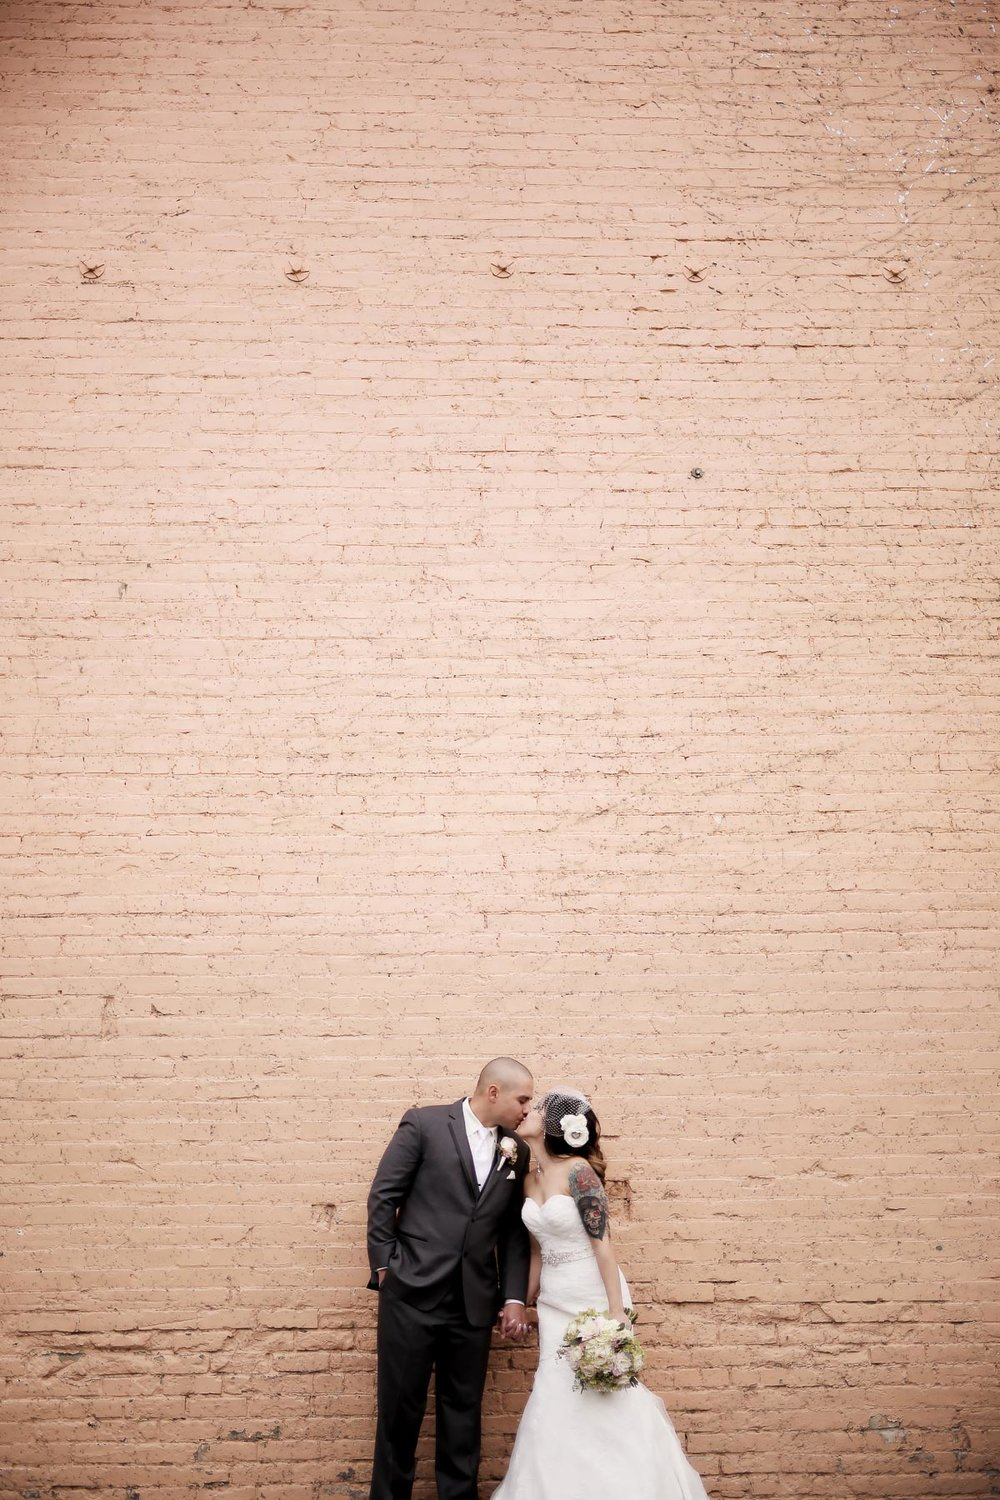 bride-and-groom-portraits-utah-weddings_pepper_nix_photography-17.jpg